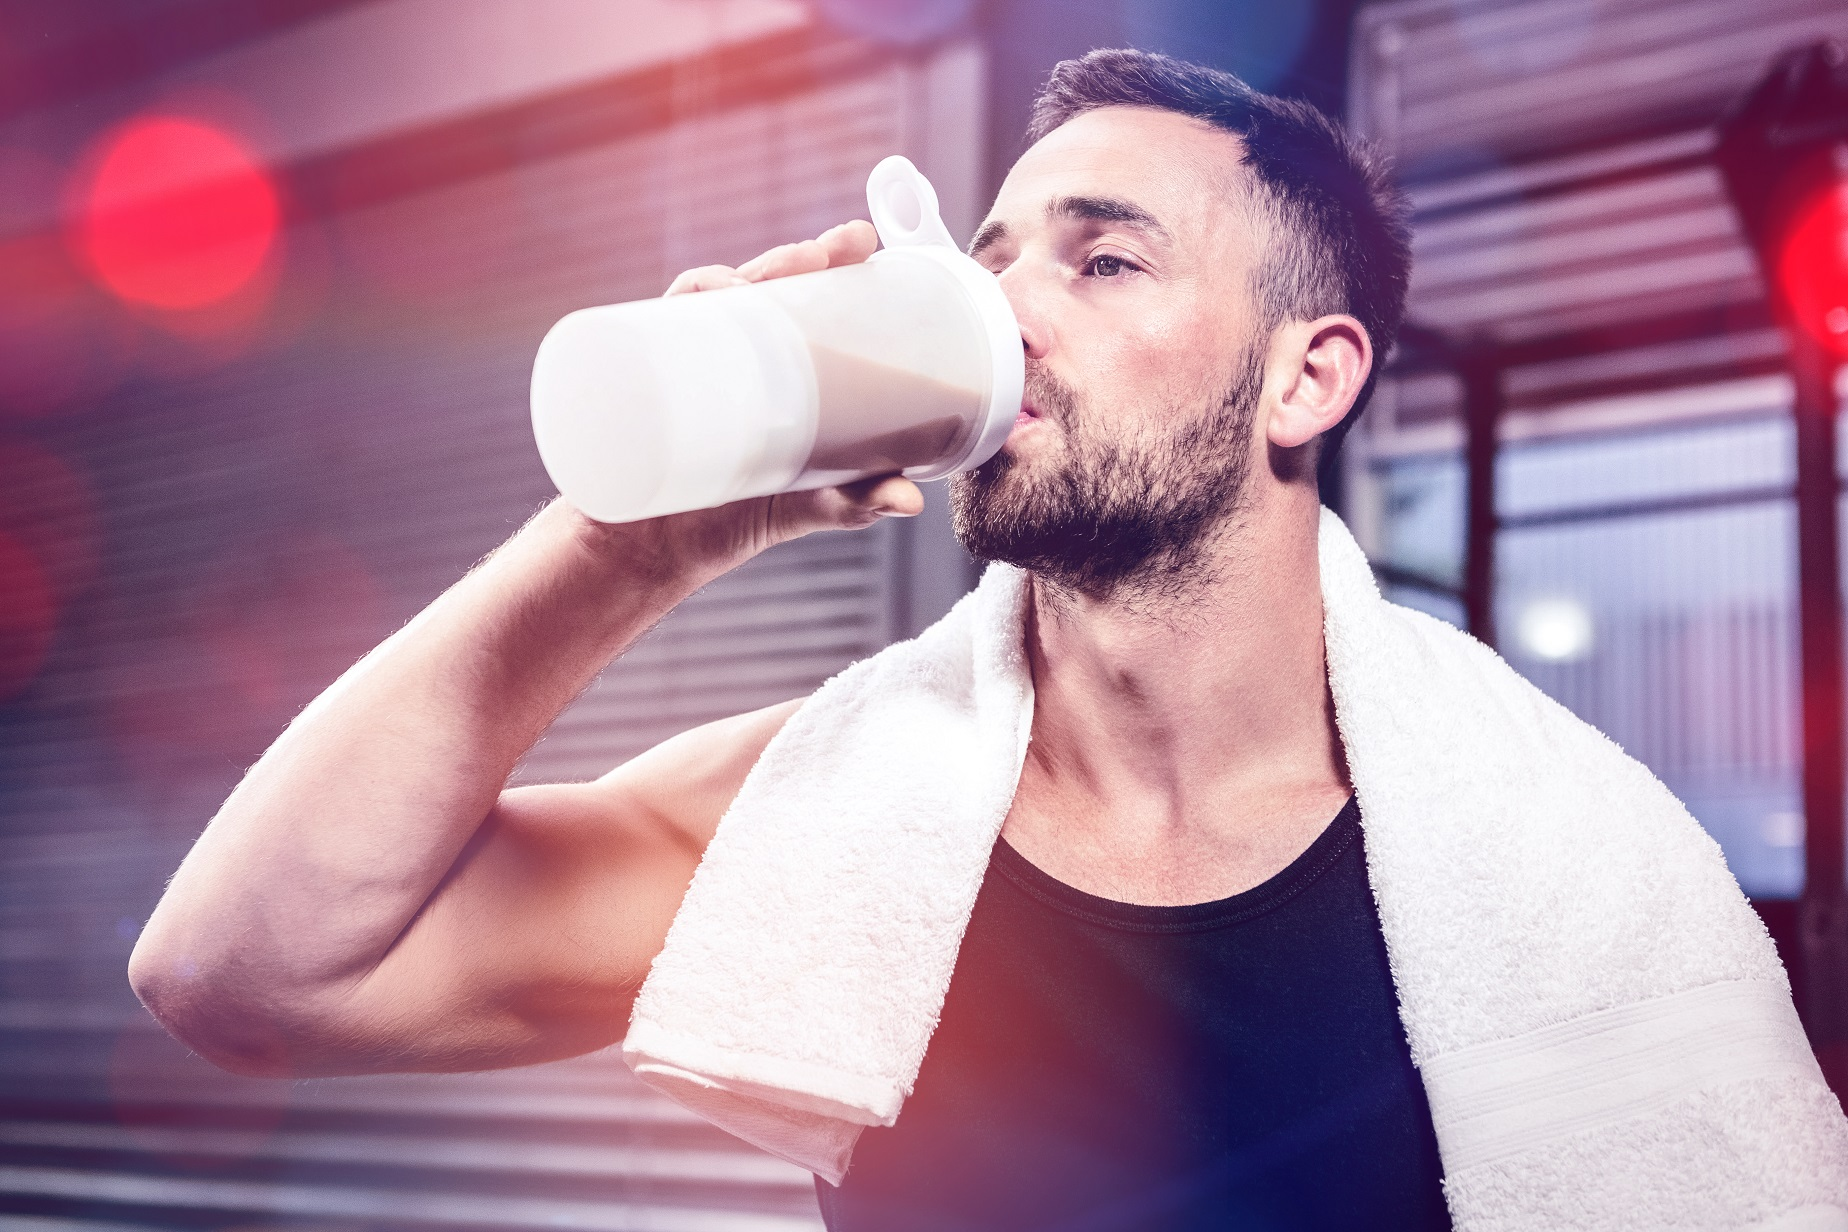 Protein after Workout for Muscle Growth